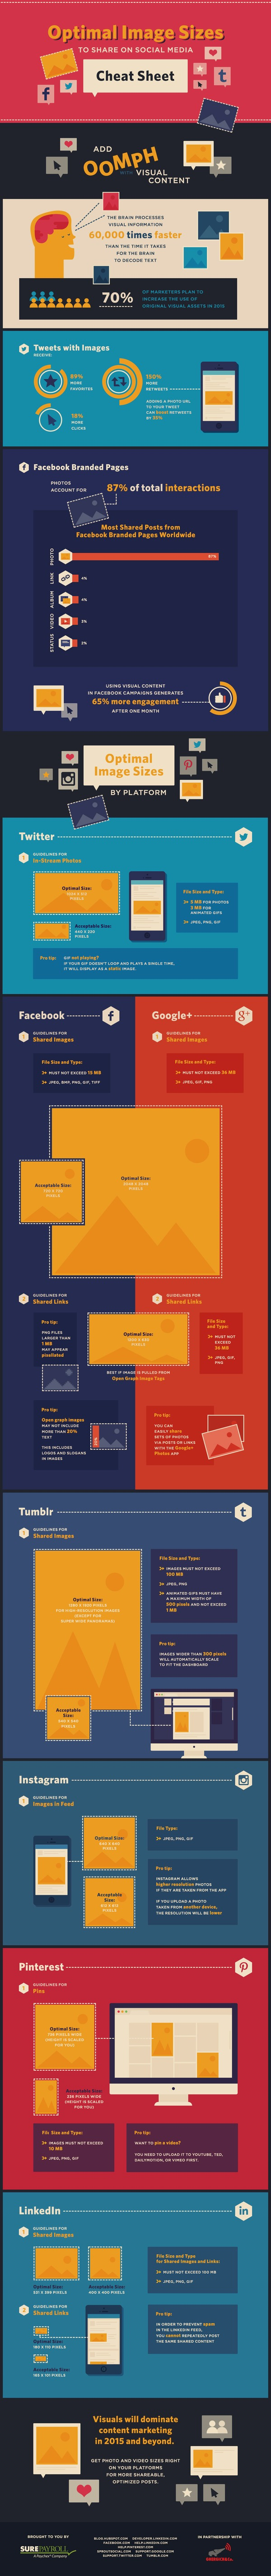 Optimal Image Sizes To Share On Social Media – Social Media Cheat Sheet [Infographic] | The Marketing Technology Alert | Scoop.it